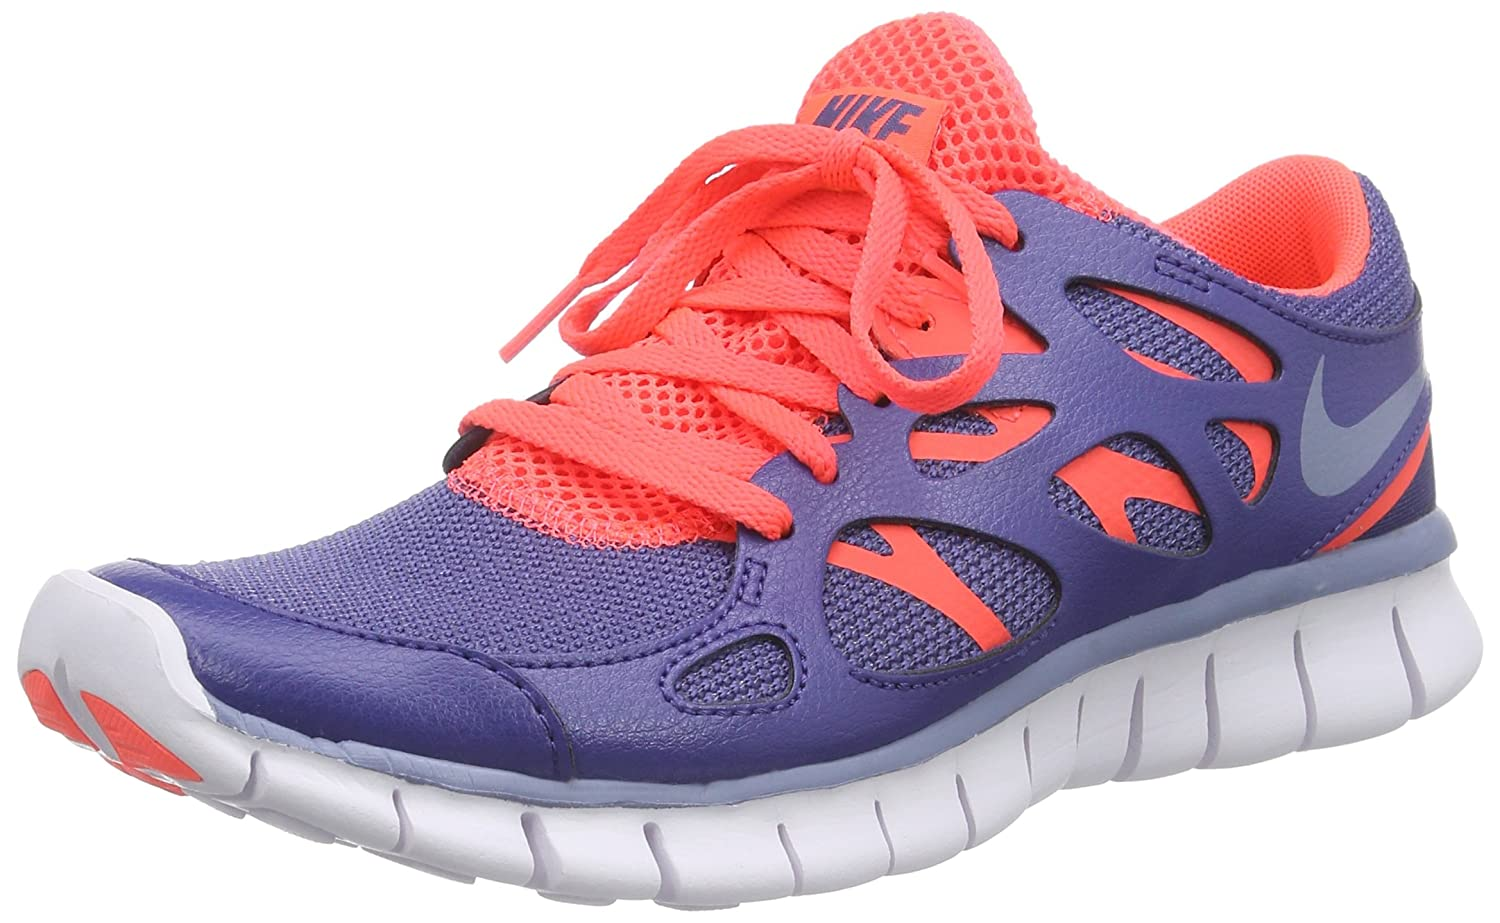 watch f112b 81119 Nike Women s s Free Run 2 Ext Shoes, Blau Legend Clear Blue-Hot Lava-White,  3  Amazon.co.uk  Shoes   Bags